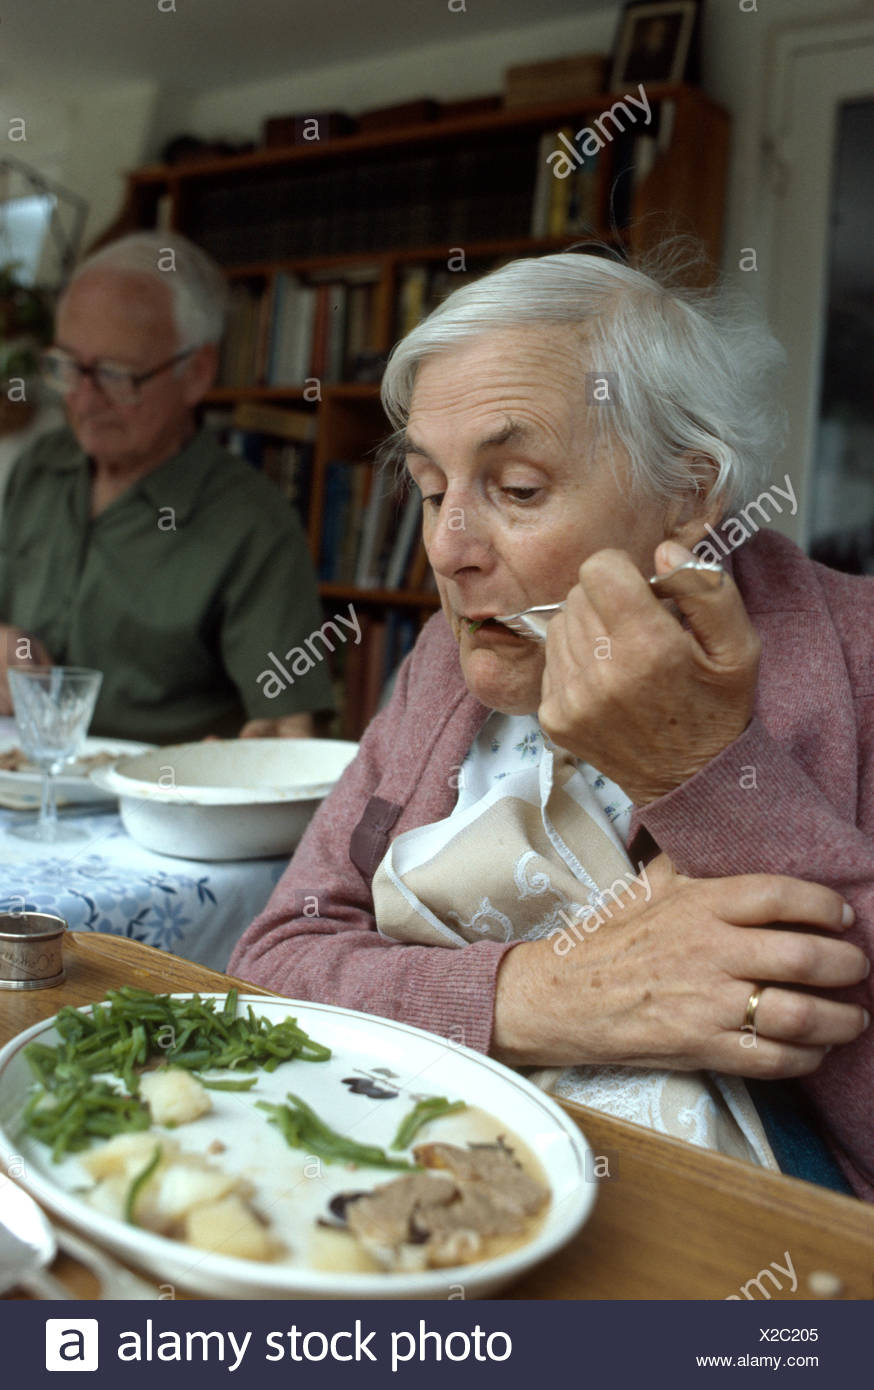 woman suffering with motor neuron disease struggles with her fork as she feeds herself - Stock Image